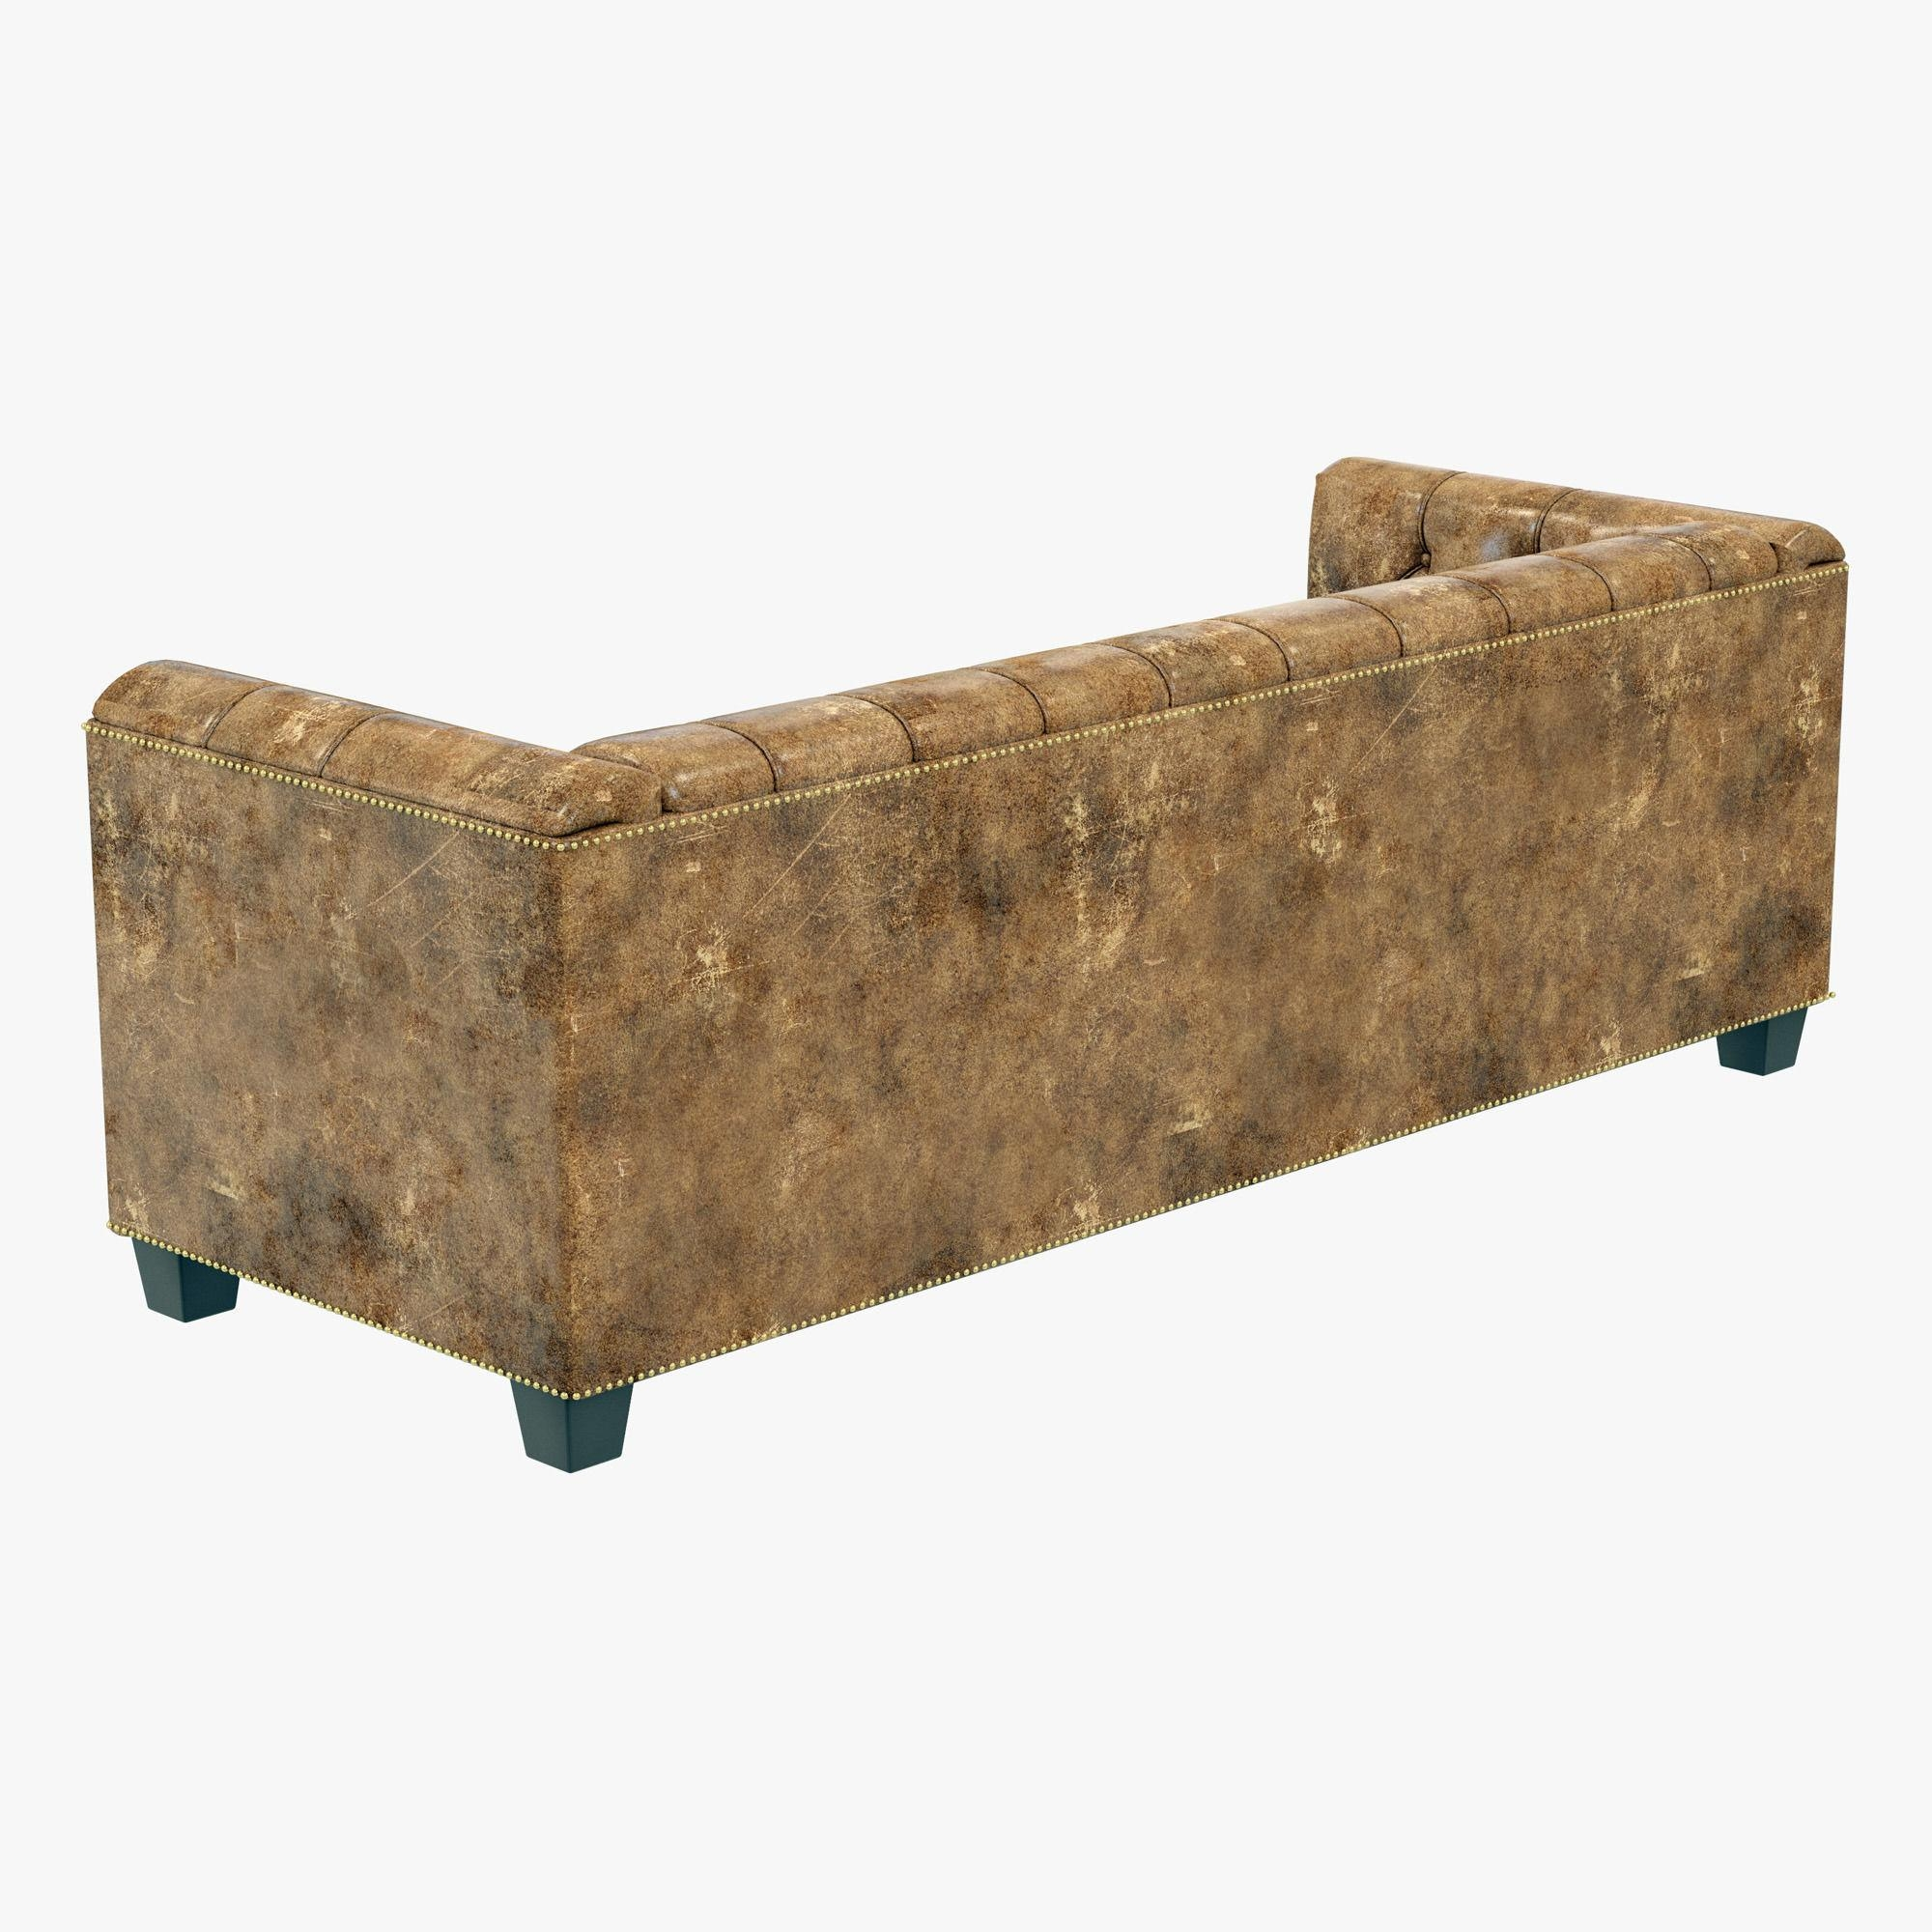 Restoration Hardware Savoy Leather Sofa 3D Model With Regard To Savoy Leather Sofas (Image 14 of 20)